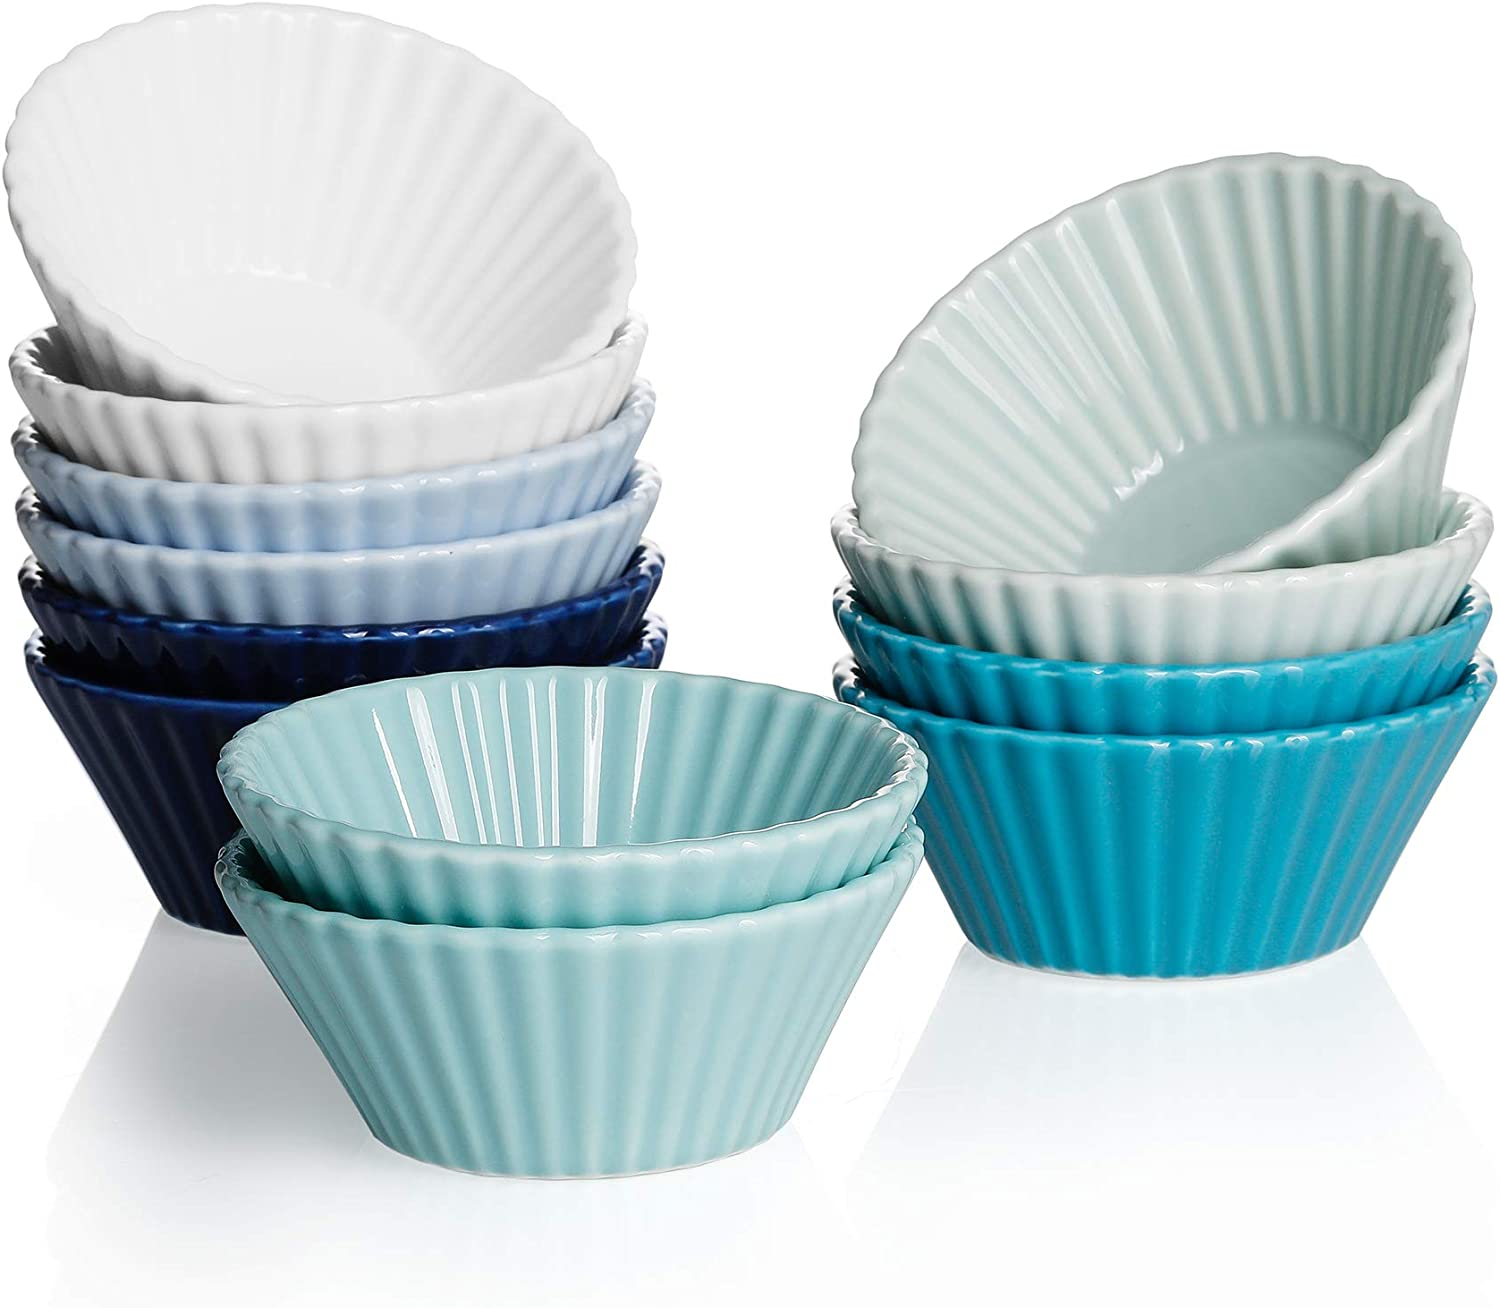 Sweese 528.003 Porcelain Baking Cups, Mini Muffin Pan, Non-Stick Cupcake Set, Alone Cupcake Holder, Sauce Dishes, Set of 12, Cool Assorted Color